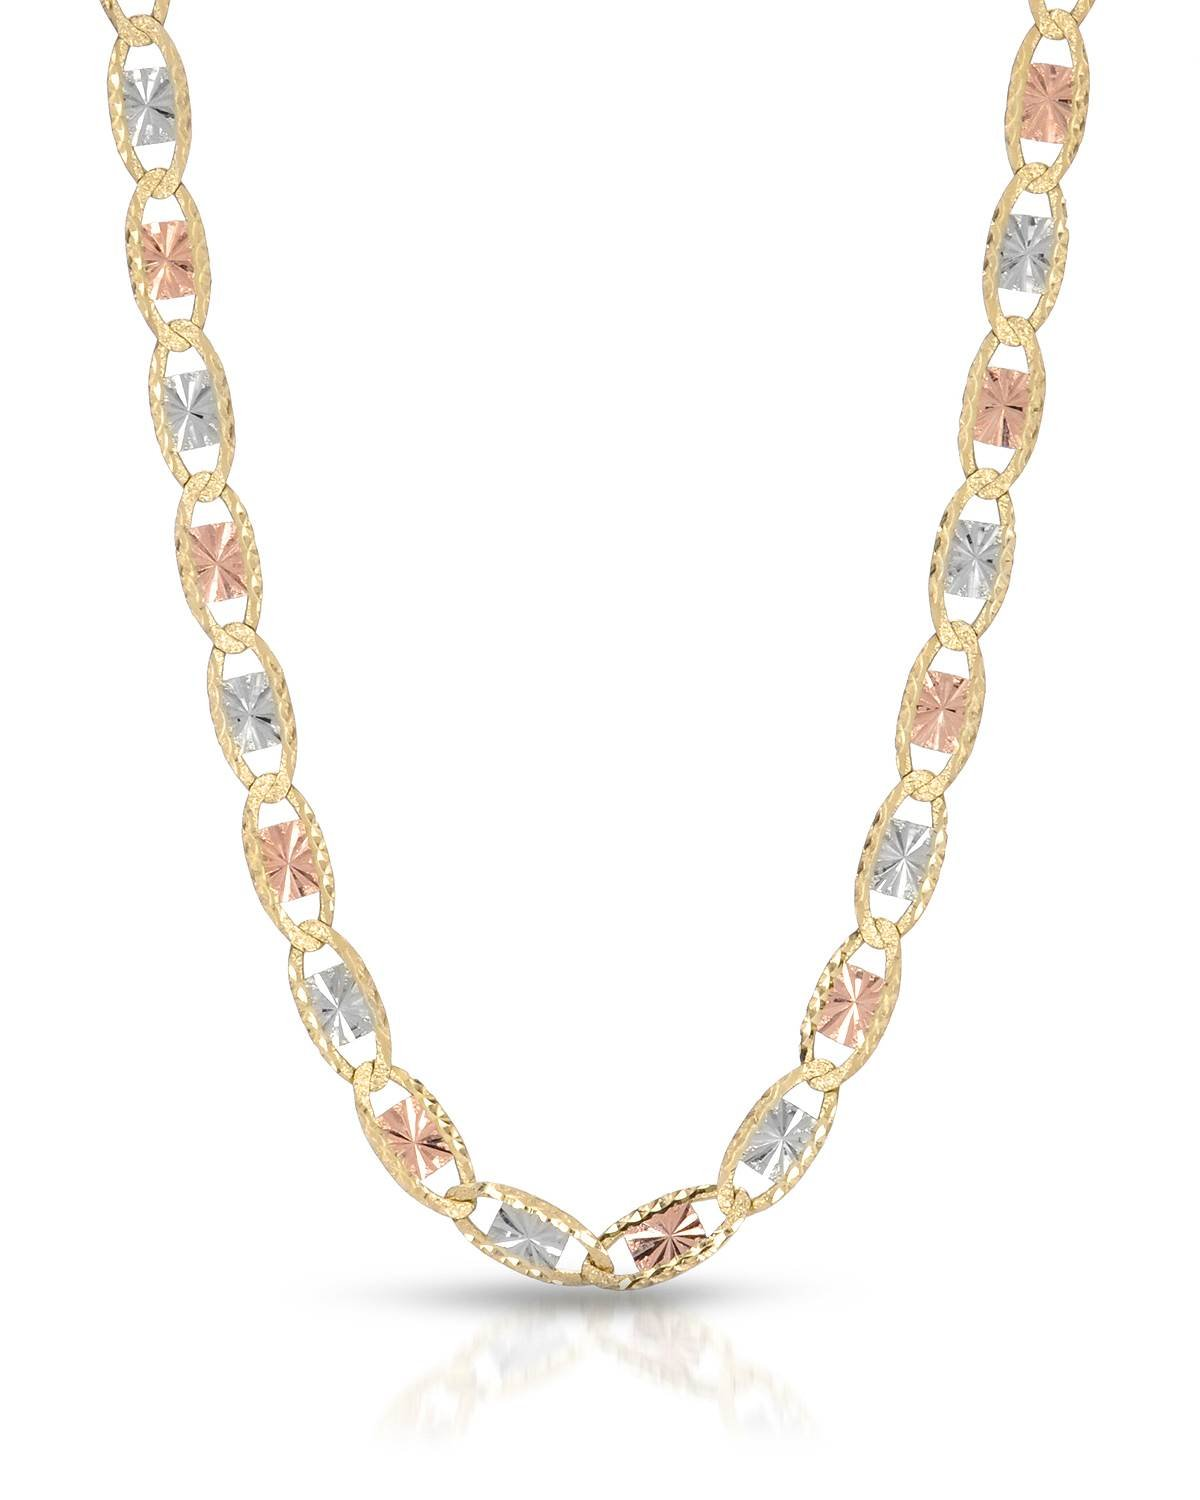 MCS Jewelry 10 Karat Three Tone Yellow Gold/White Gold/Rose Gold Necklace 3MM Width (16''-24'') (20)